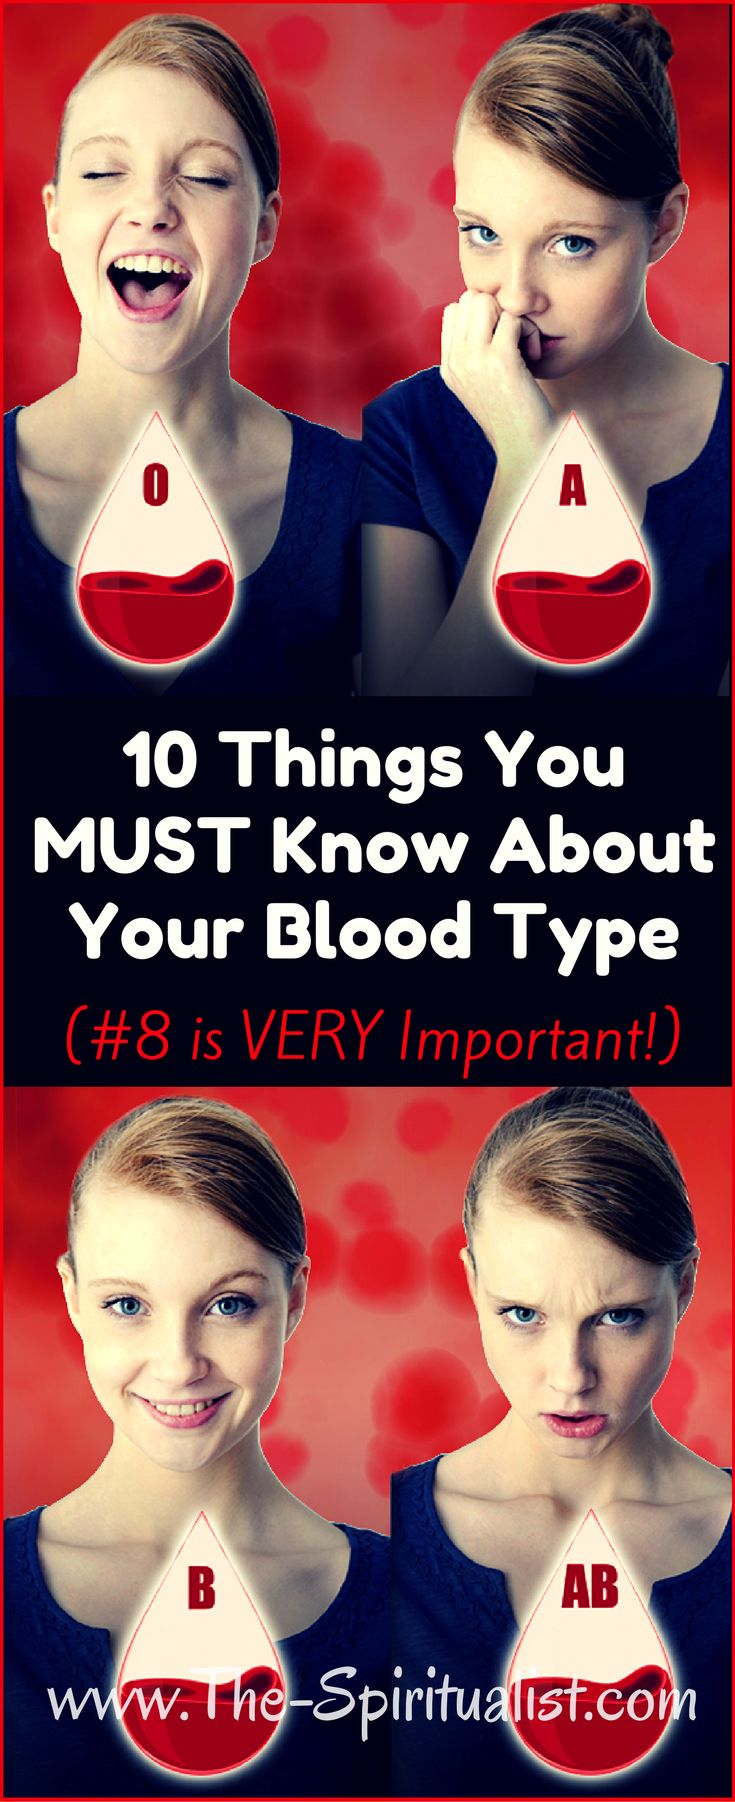 10 Things You MUST Know About Your Blood Type.......